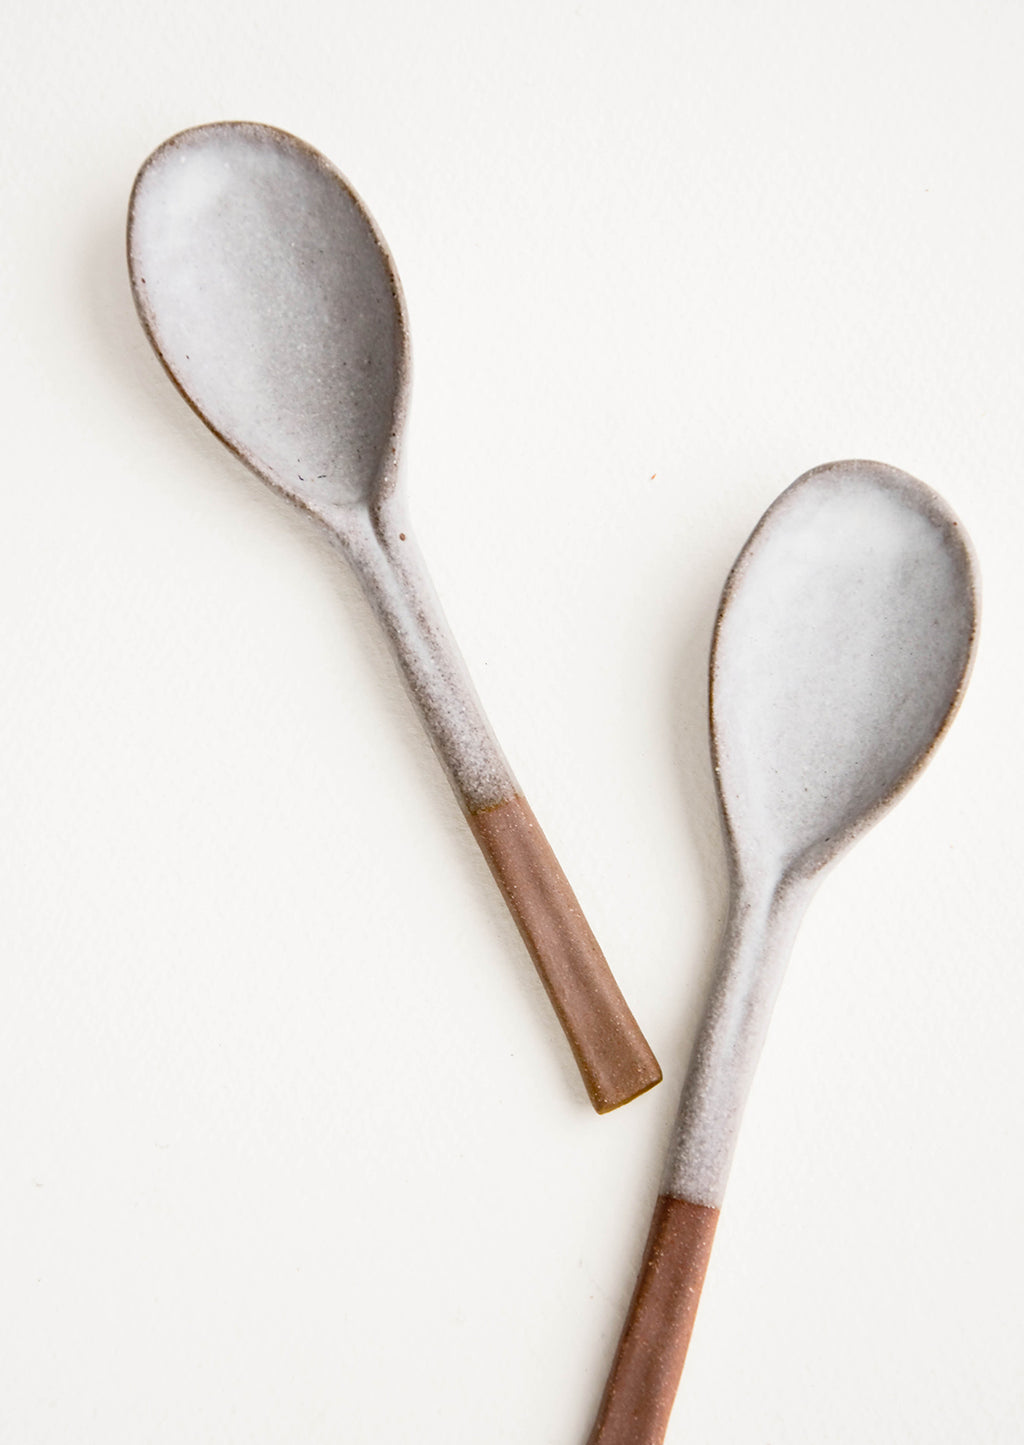 2: Ceramic soup spoons in earthy brown clay dipped in white glaze